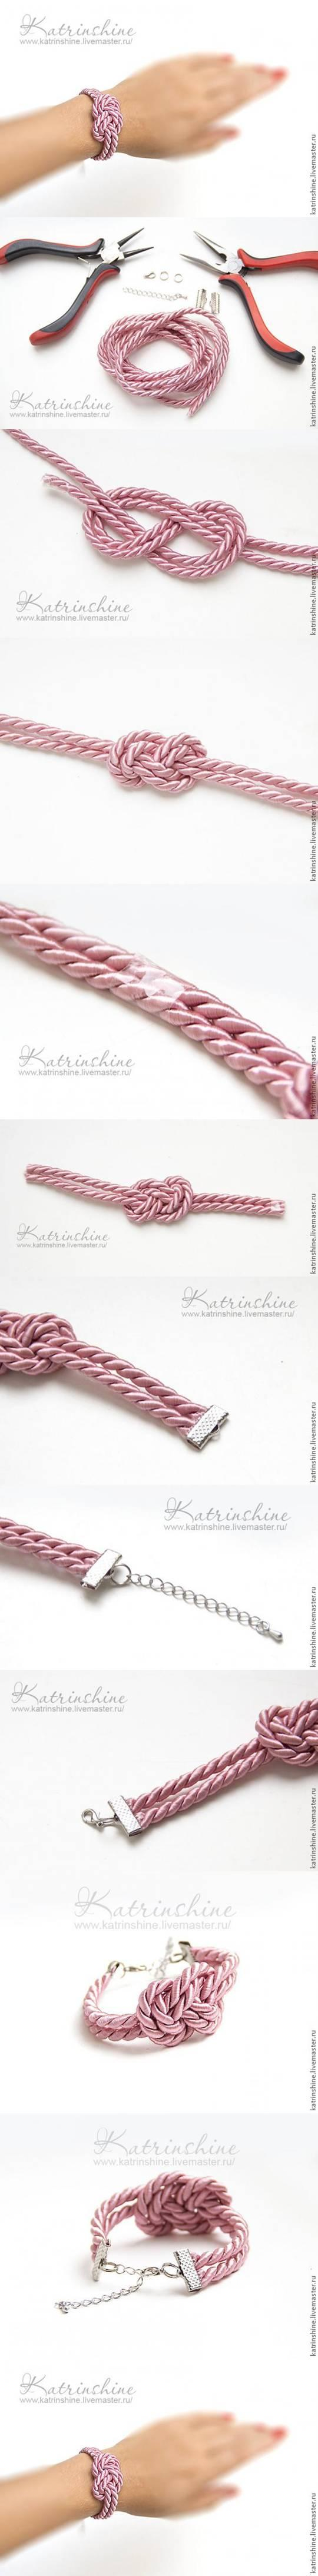 DIY Bracelet with a Knot of Silk Cord DIY Projects | UsefulDIY.com